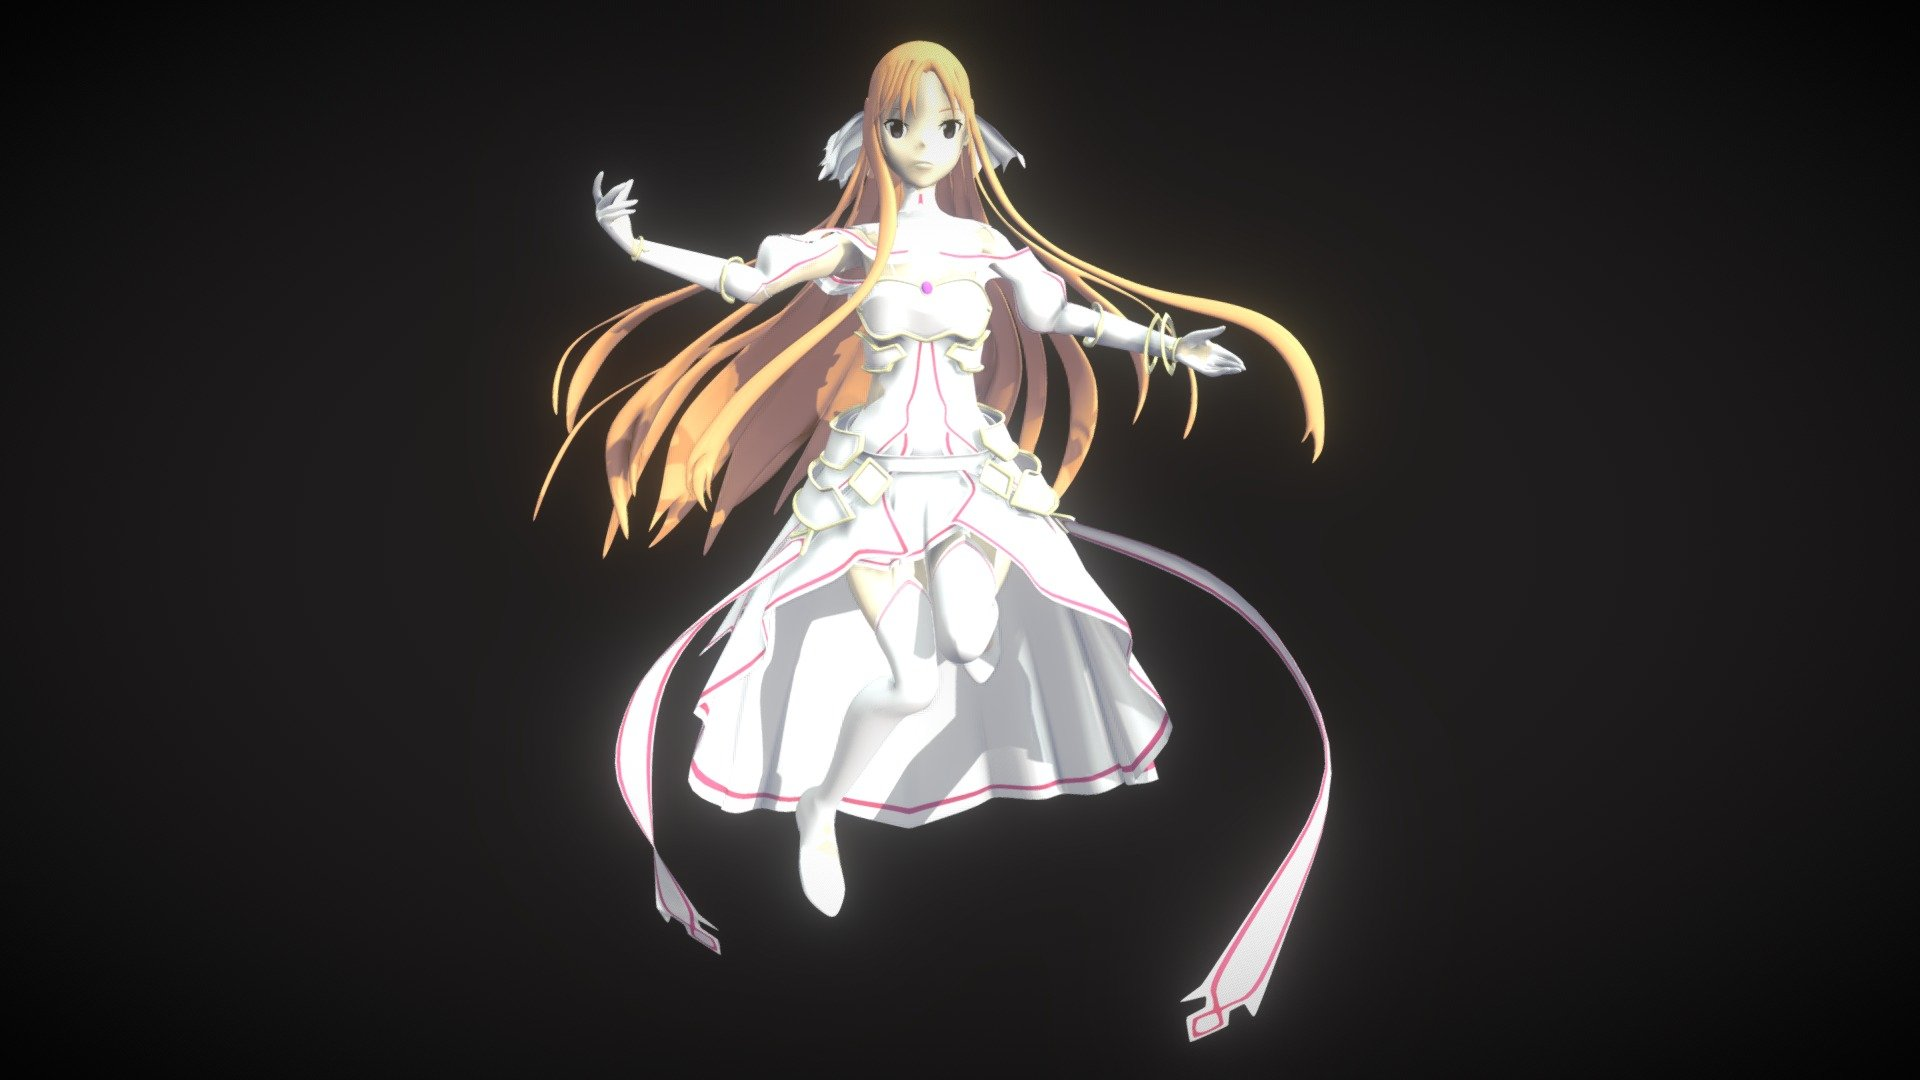 Sao Alicization Asuna Stacia 3d Model By Syahhz Syahhz A6a3433 Sketchfab